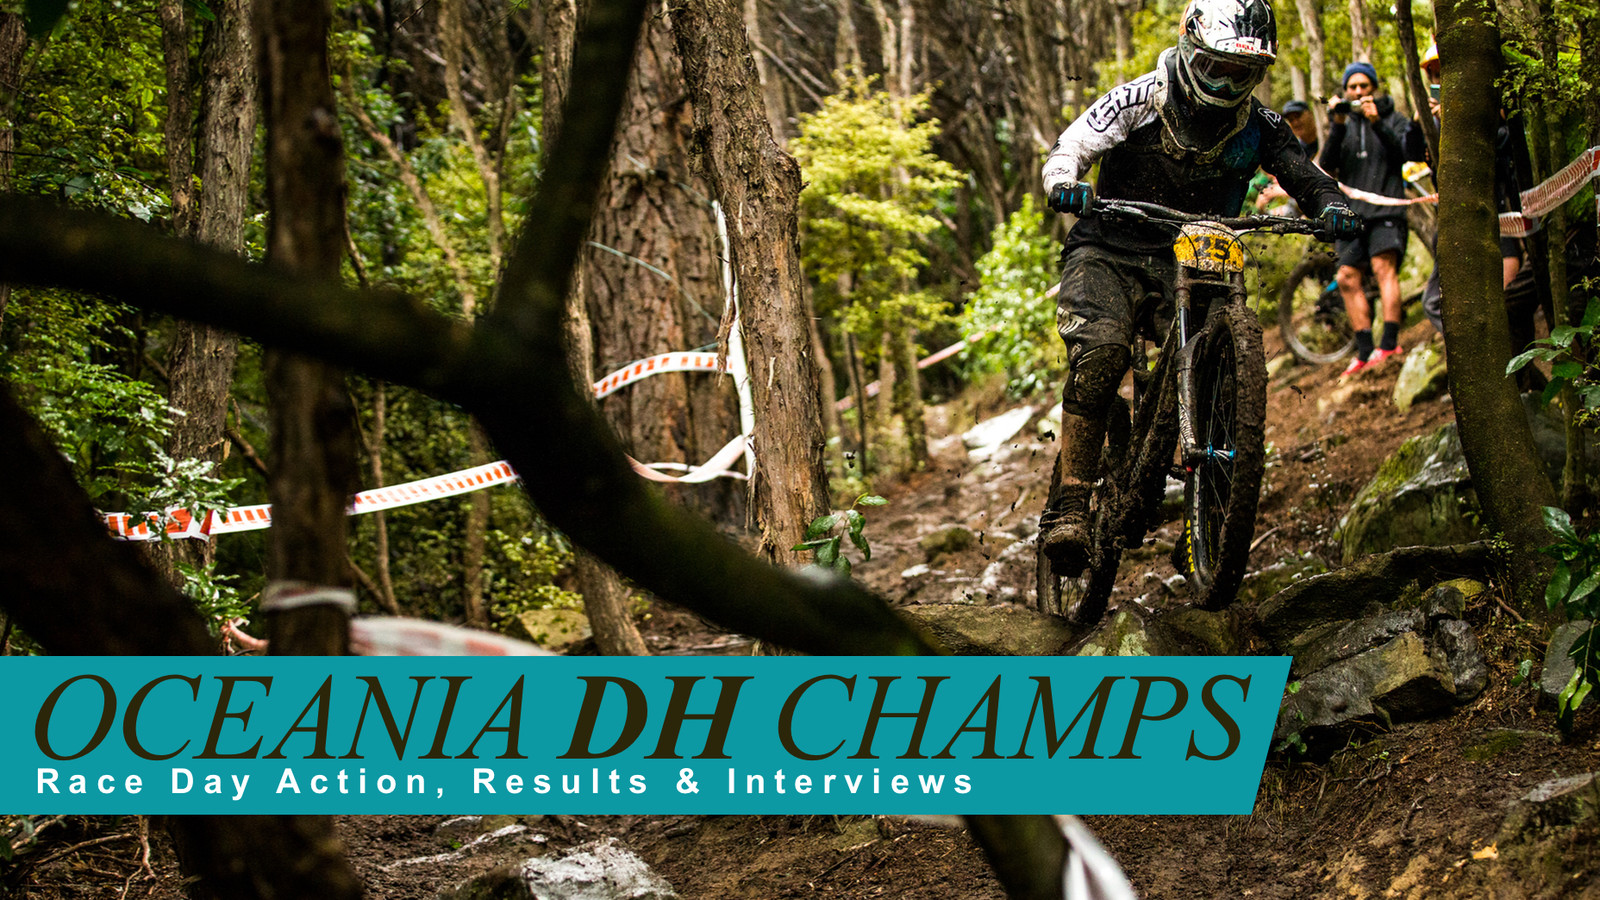 Oceania DH Champs, Results, Race Action and Interviews